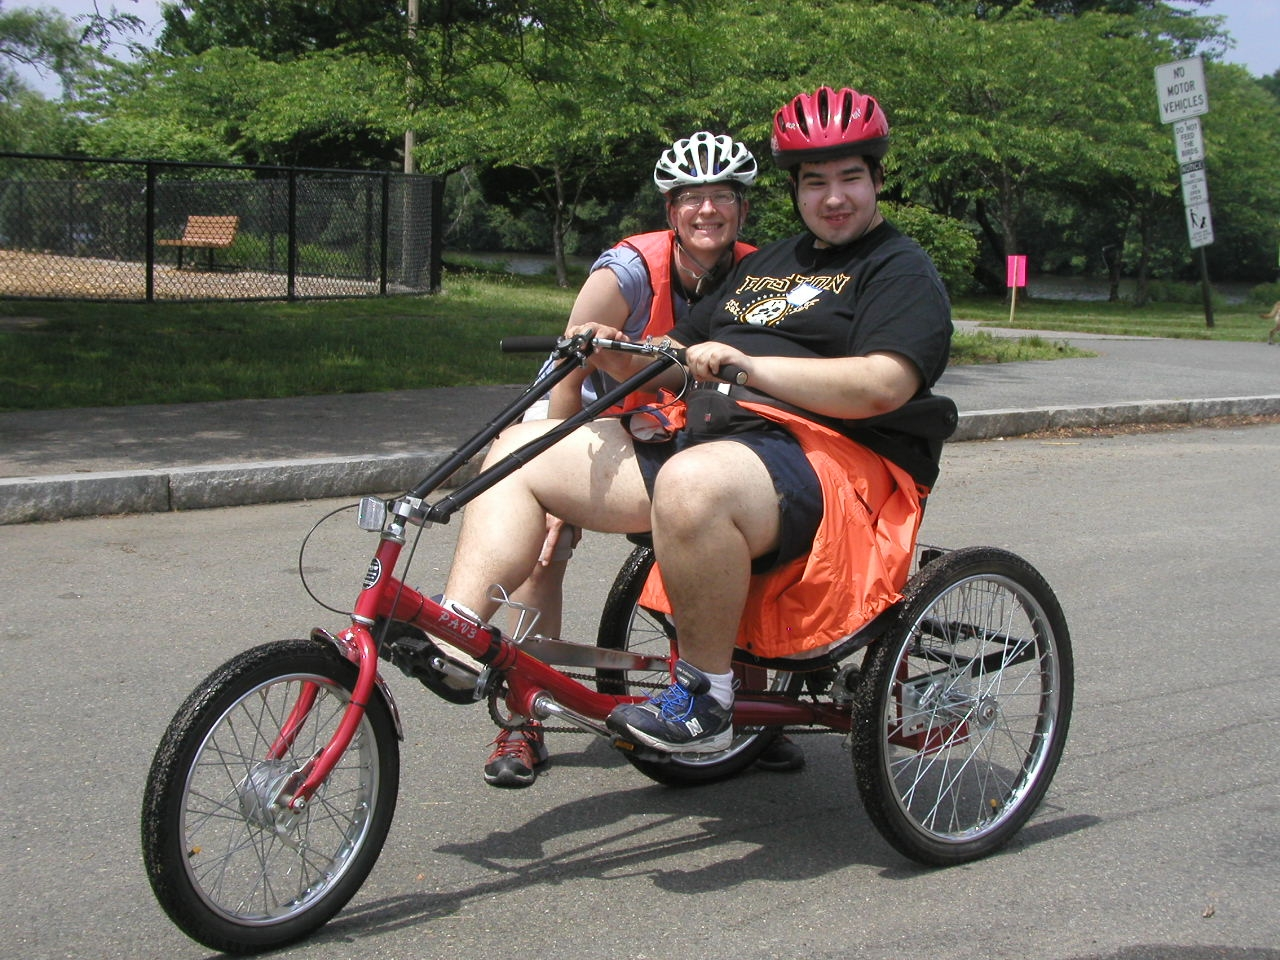 Bikes For Obese Men The Personal Activity Vehicle